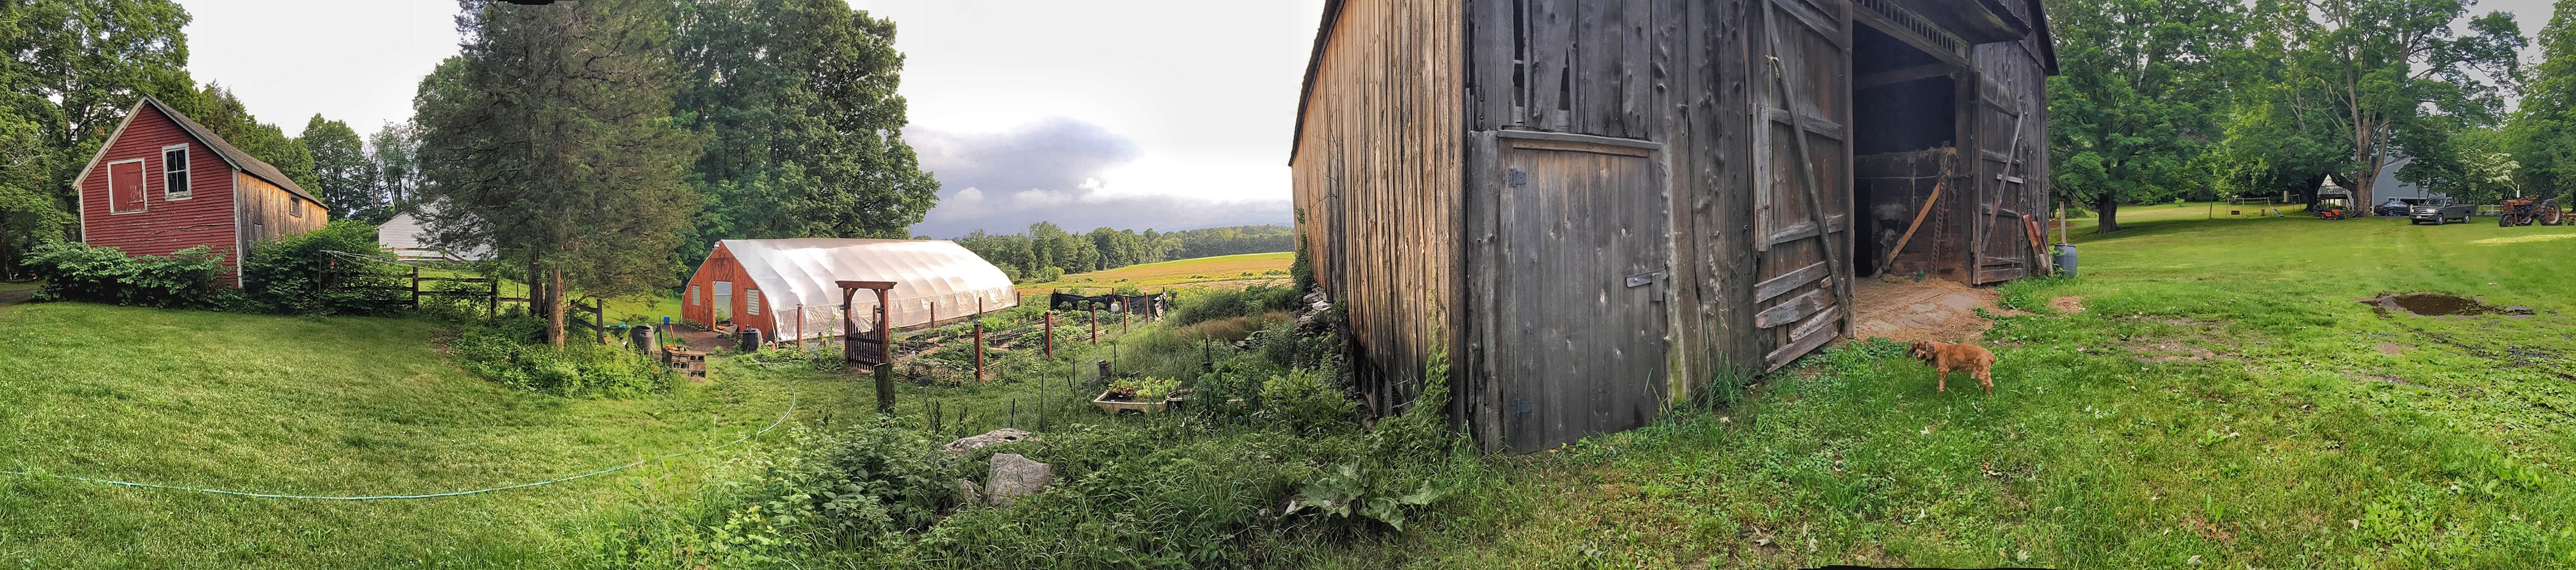 Panoramic view of the farm.